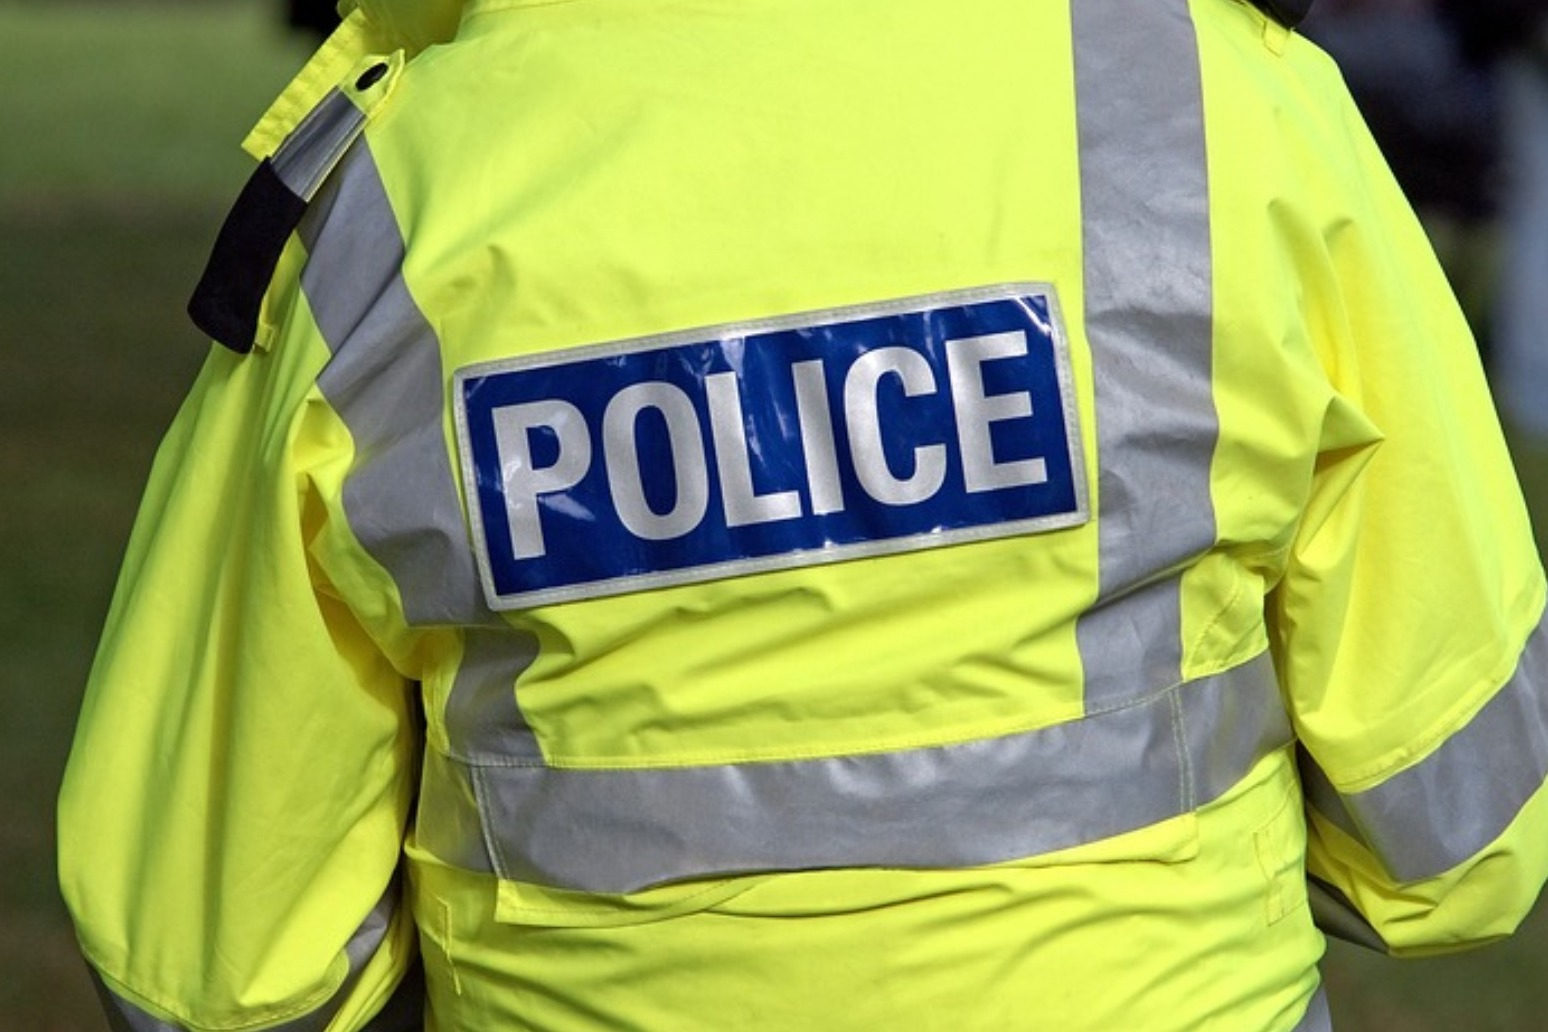 Police officer found guilty of submitting false insurance claims and personal injuries.